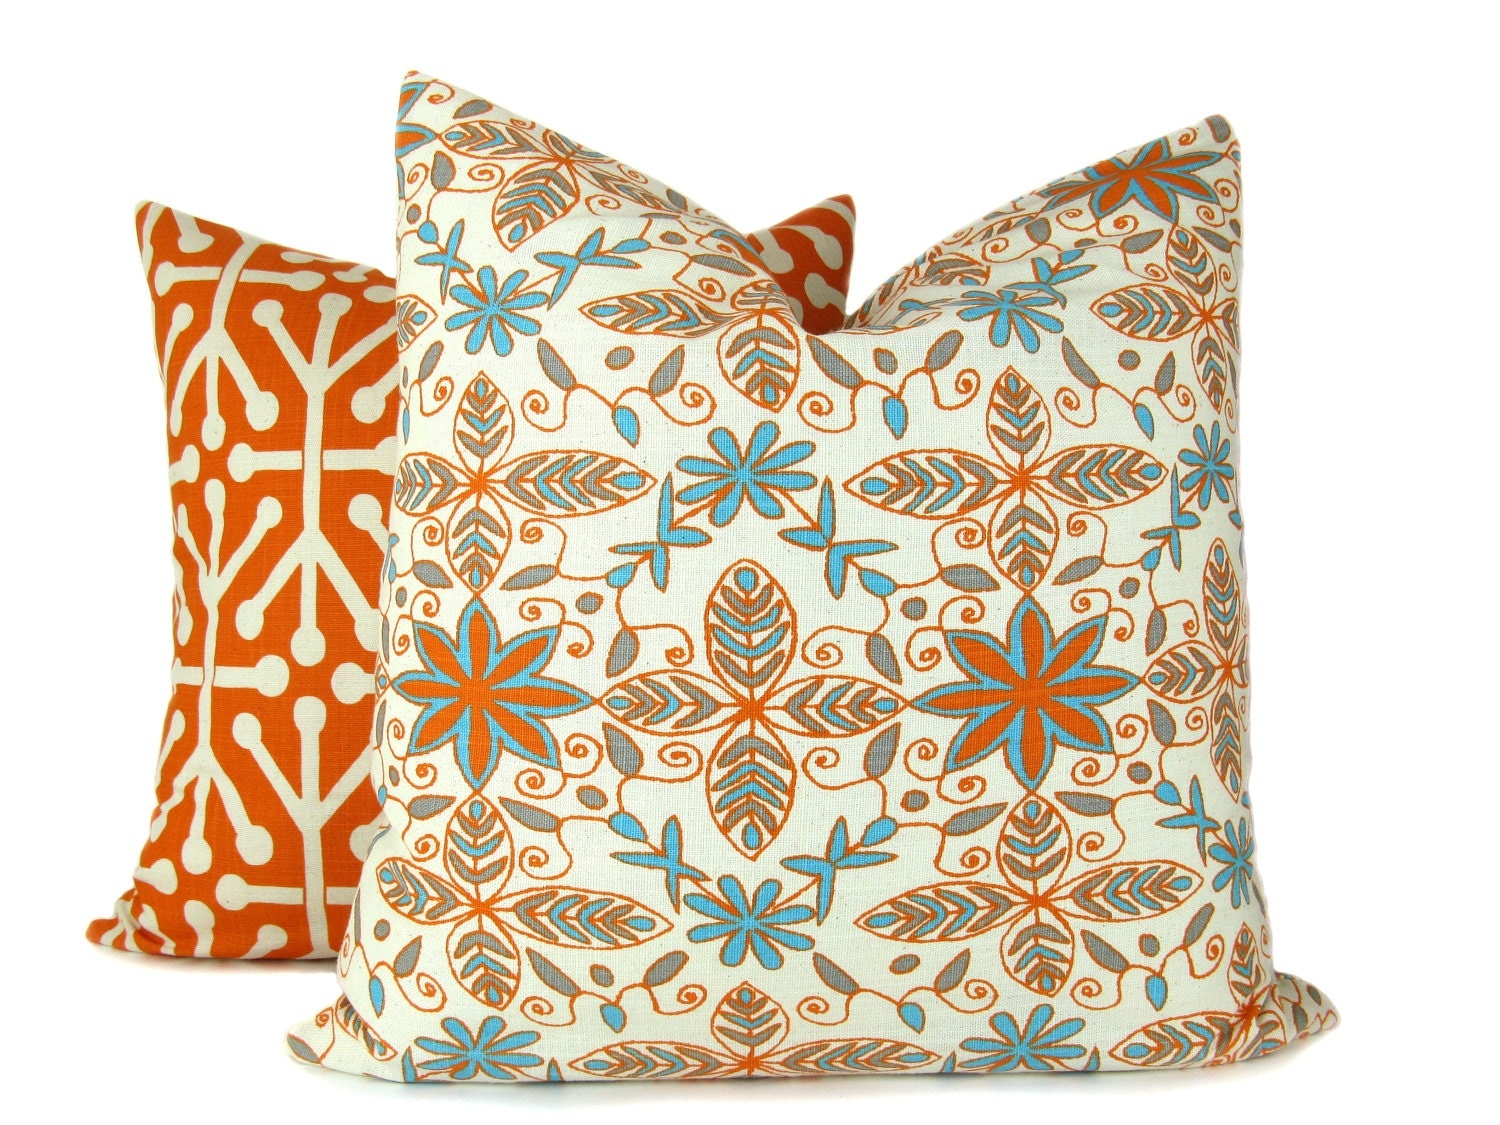 Decorative Orange Pillows TWO 20x20 Covers Coordinating Prints With Oranges light blues and creams